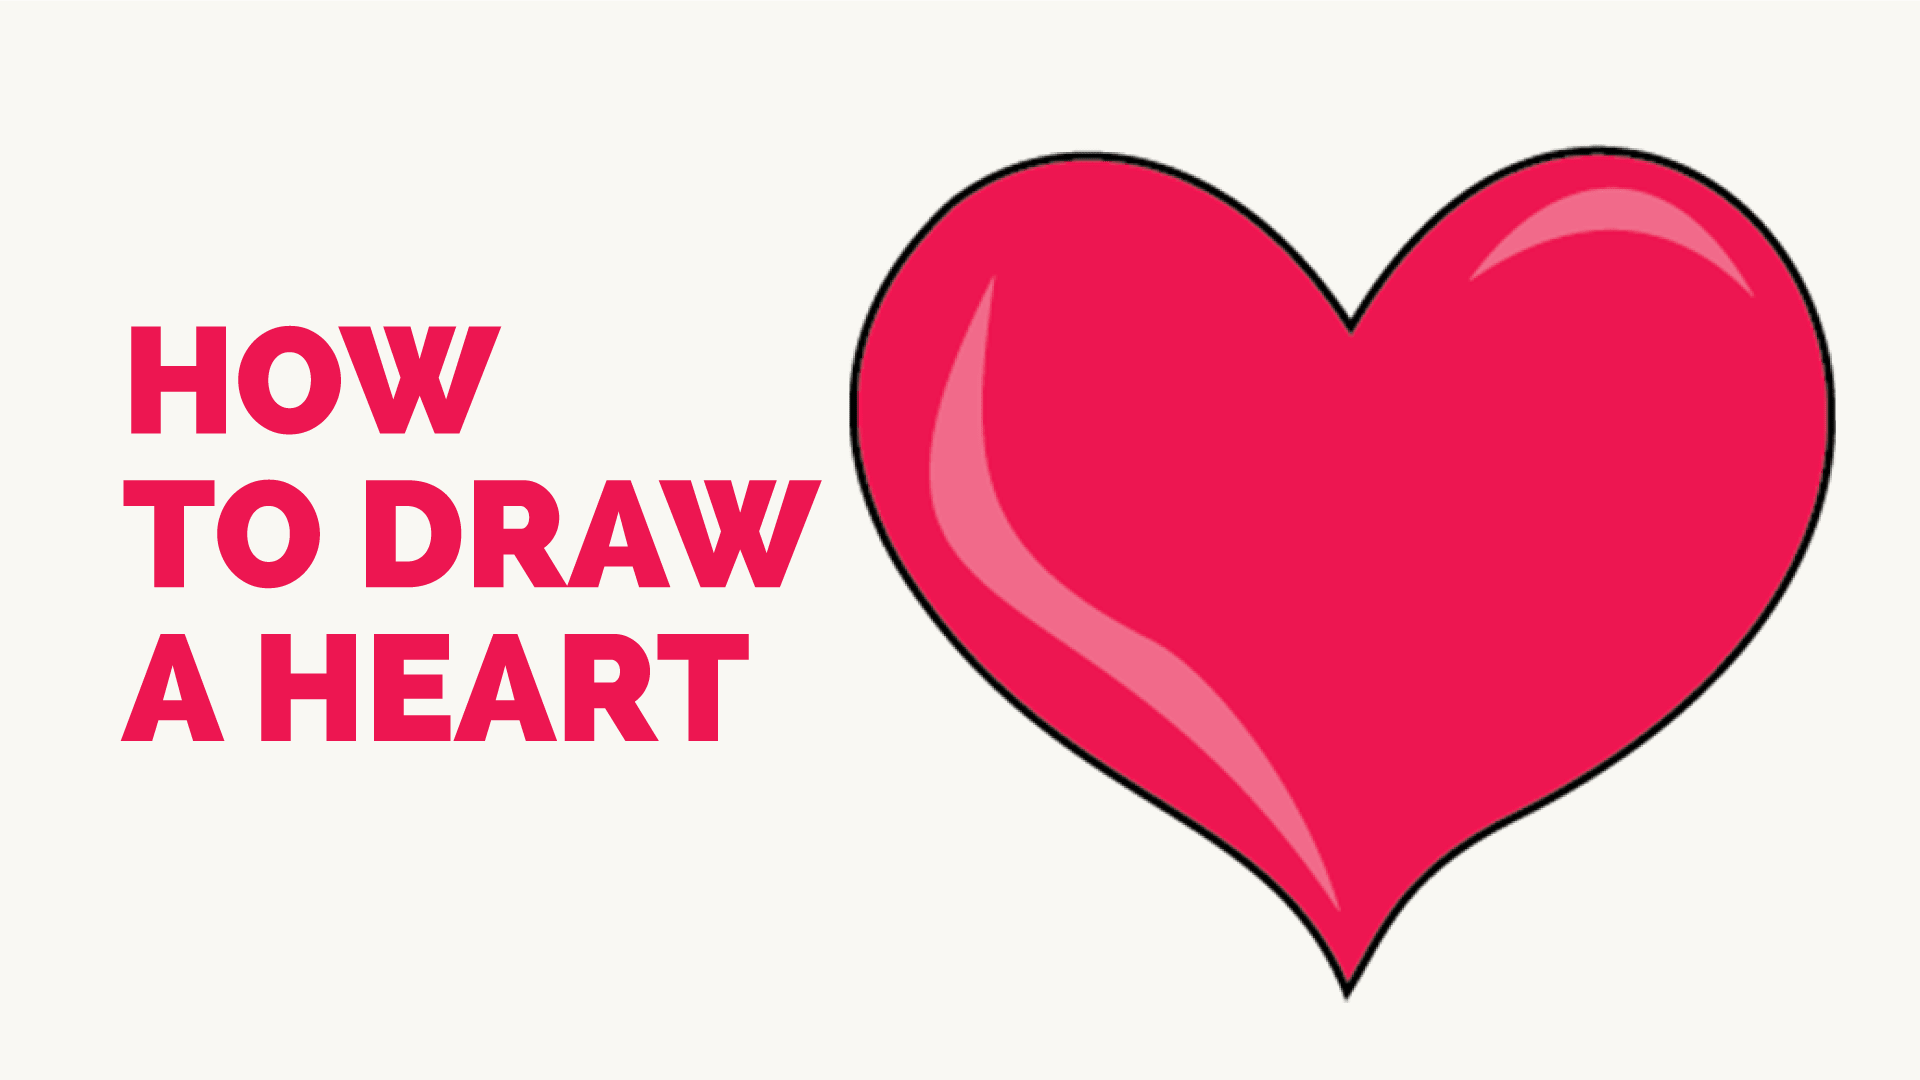 How To Draw A Heart Step By Tutorial Easy Drawing Guides Diagram Click For Details Show Me Of The Human